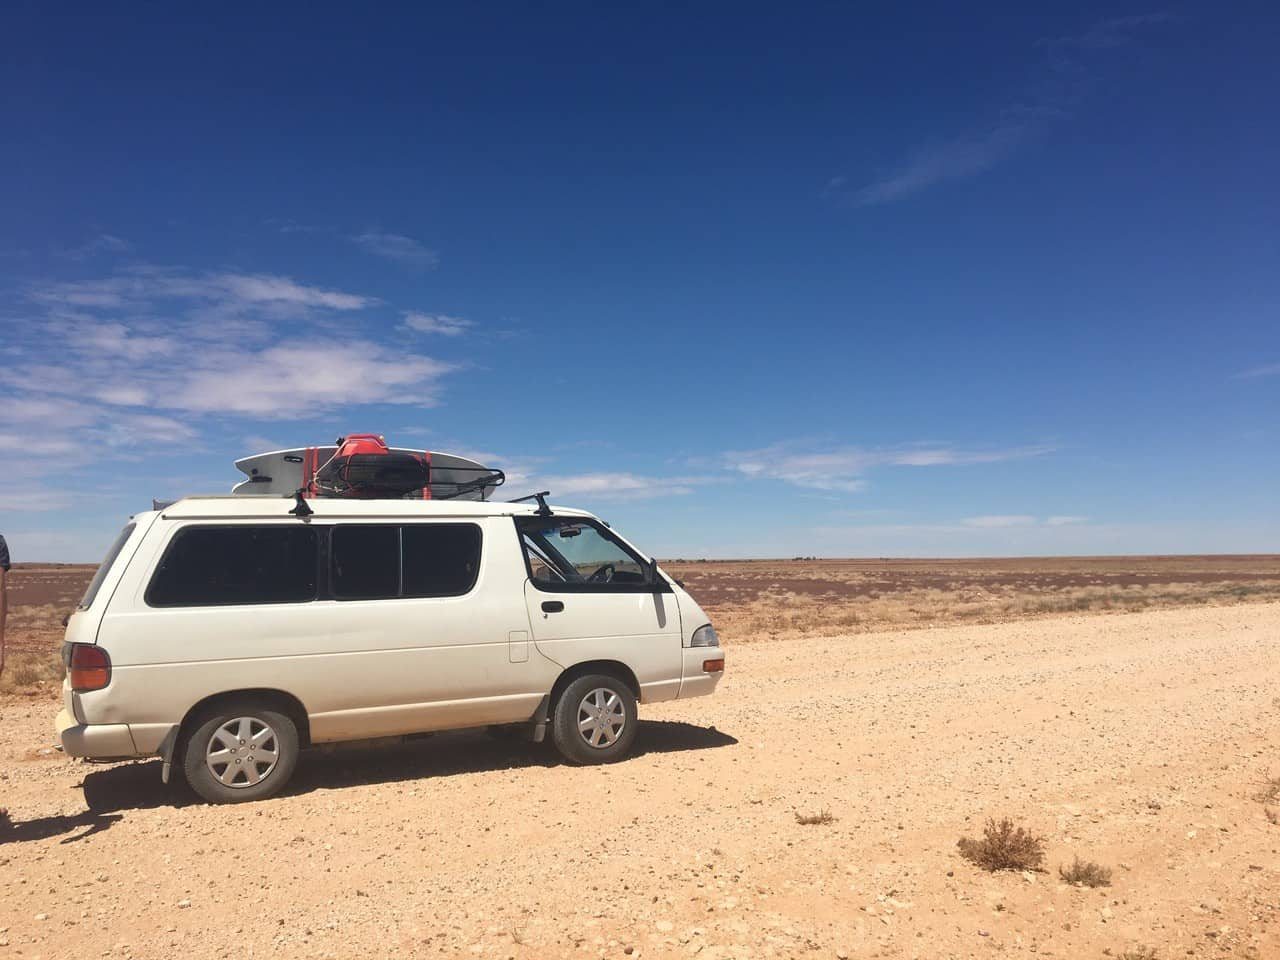 A vehicle set up for camping in Australia